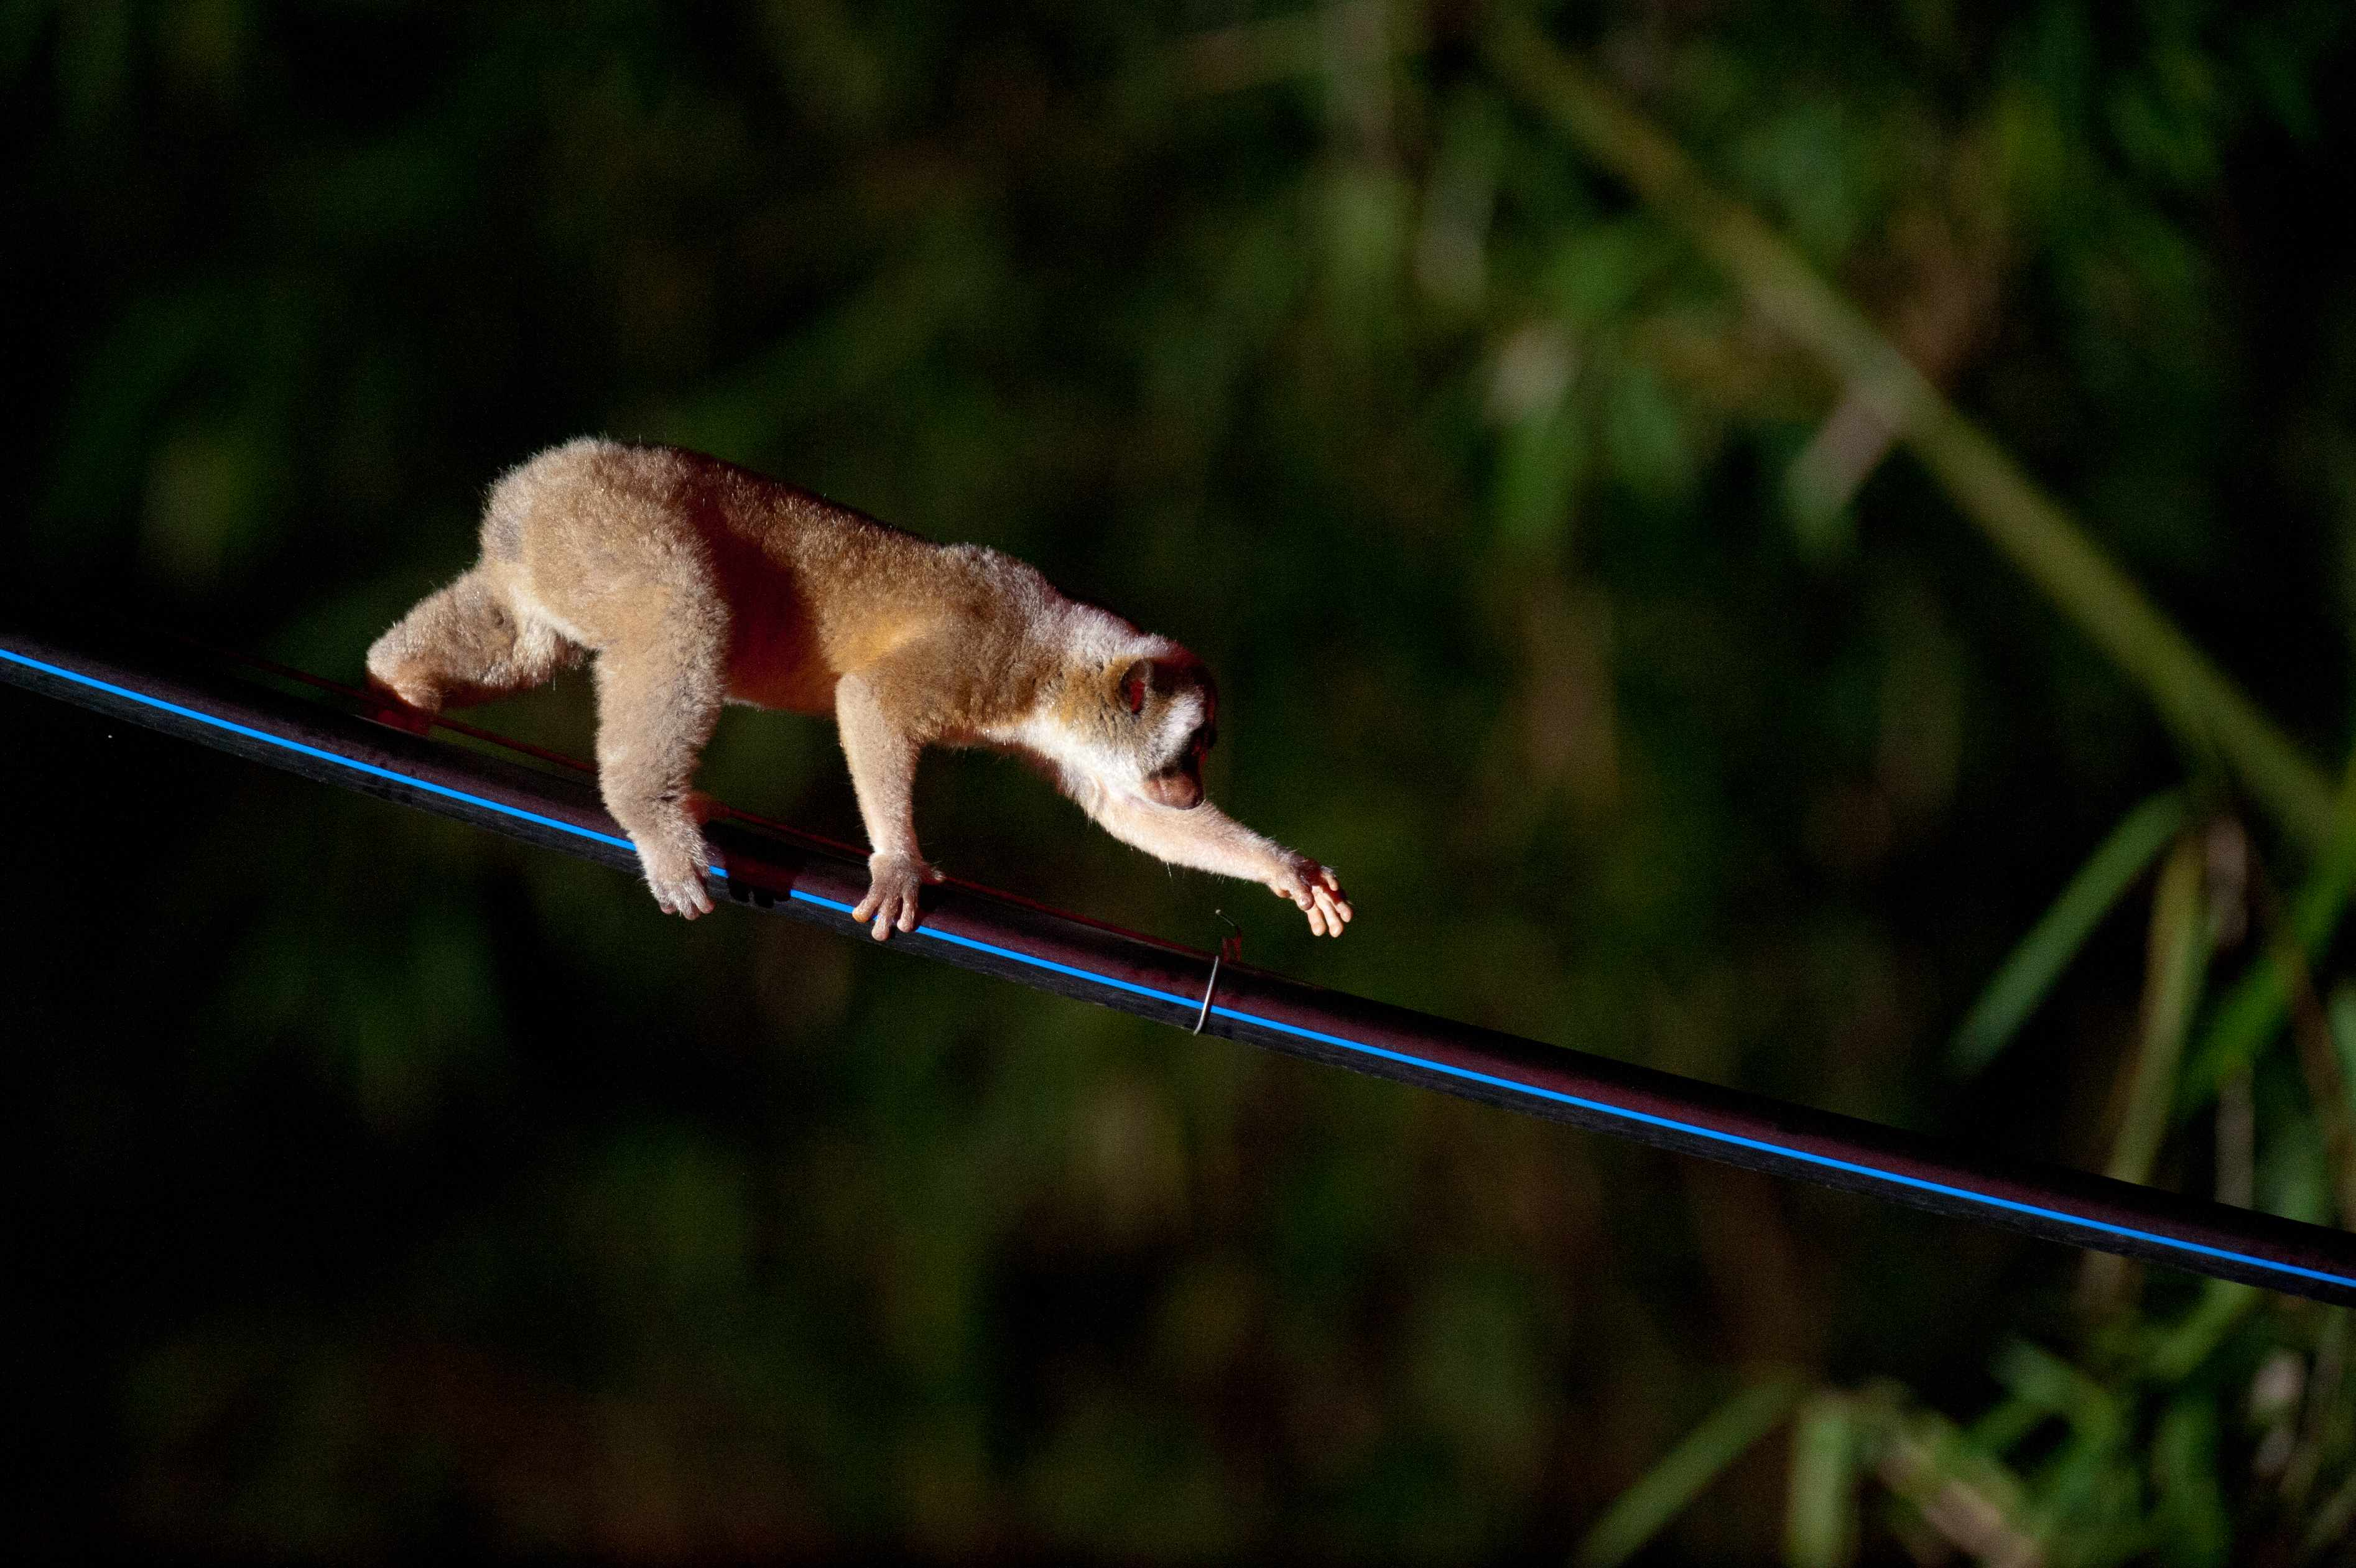 Female Javan slow loris on hose pipe bridge